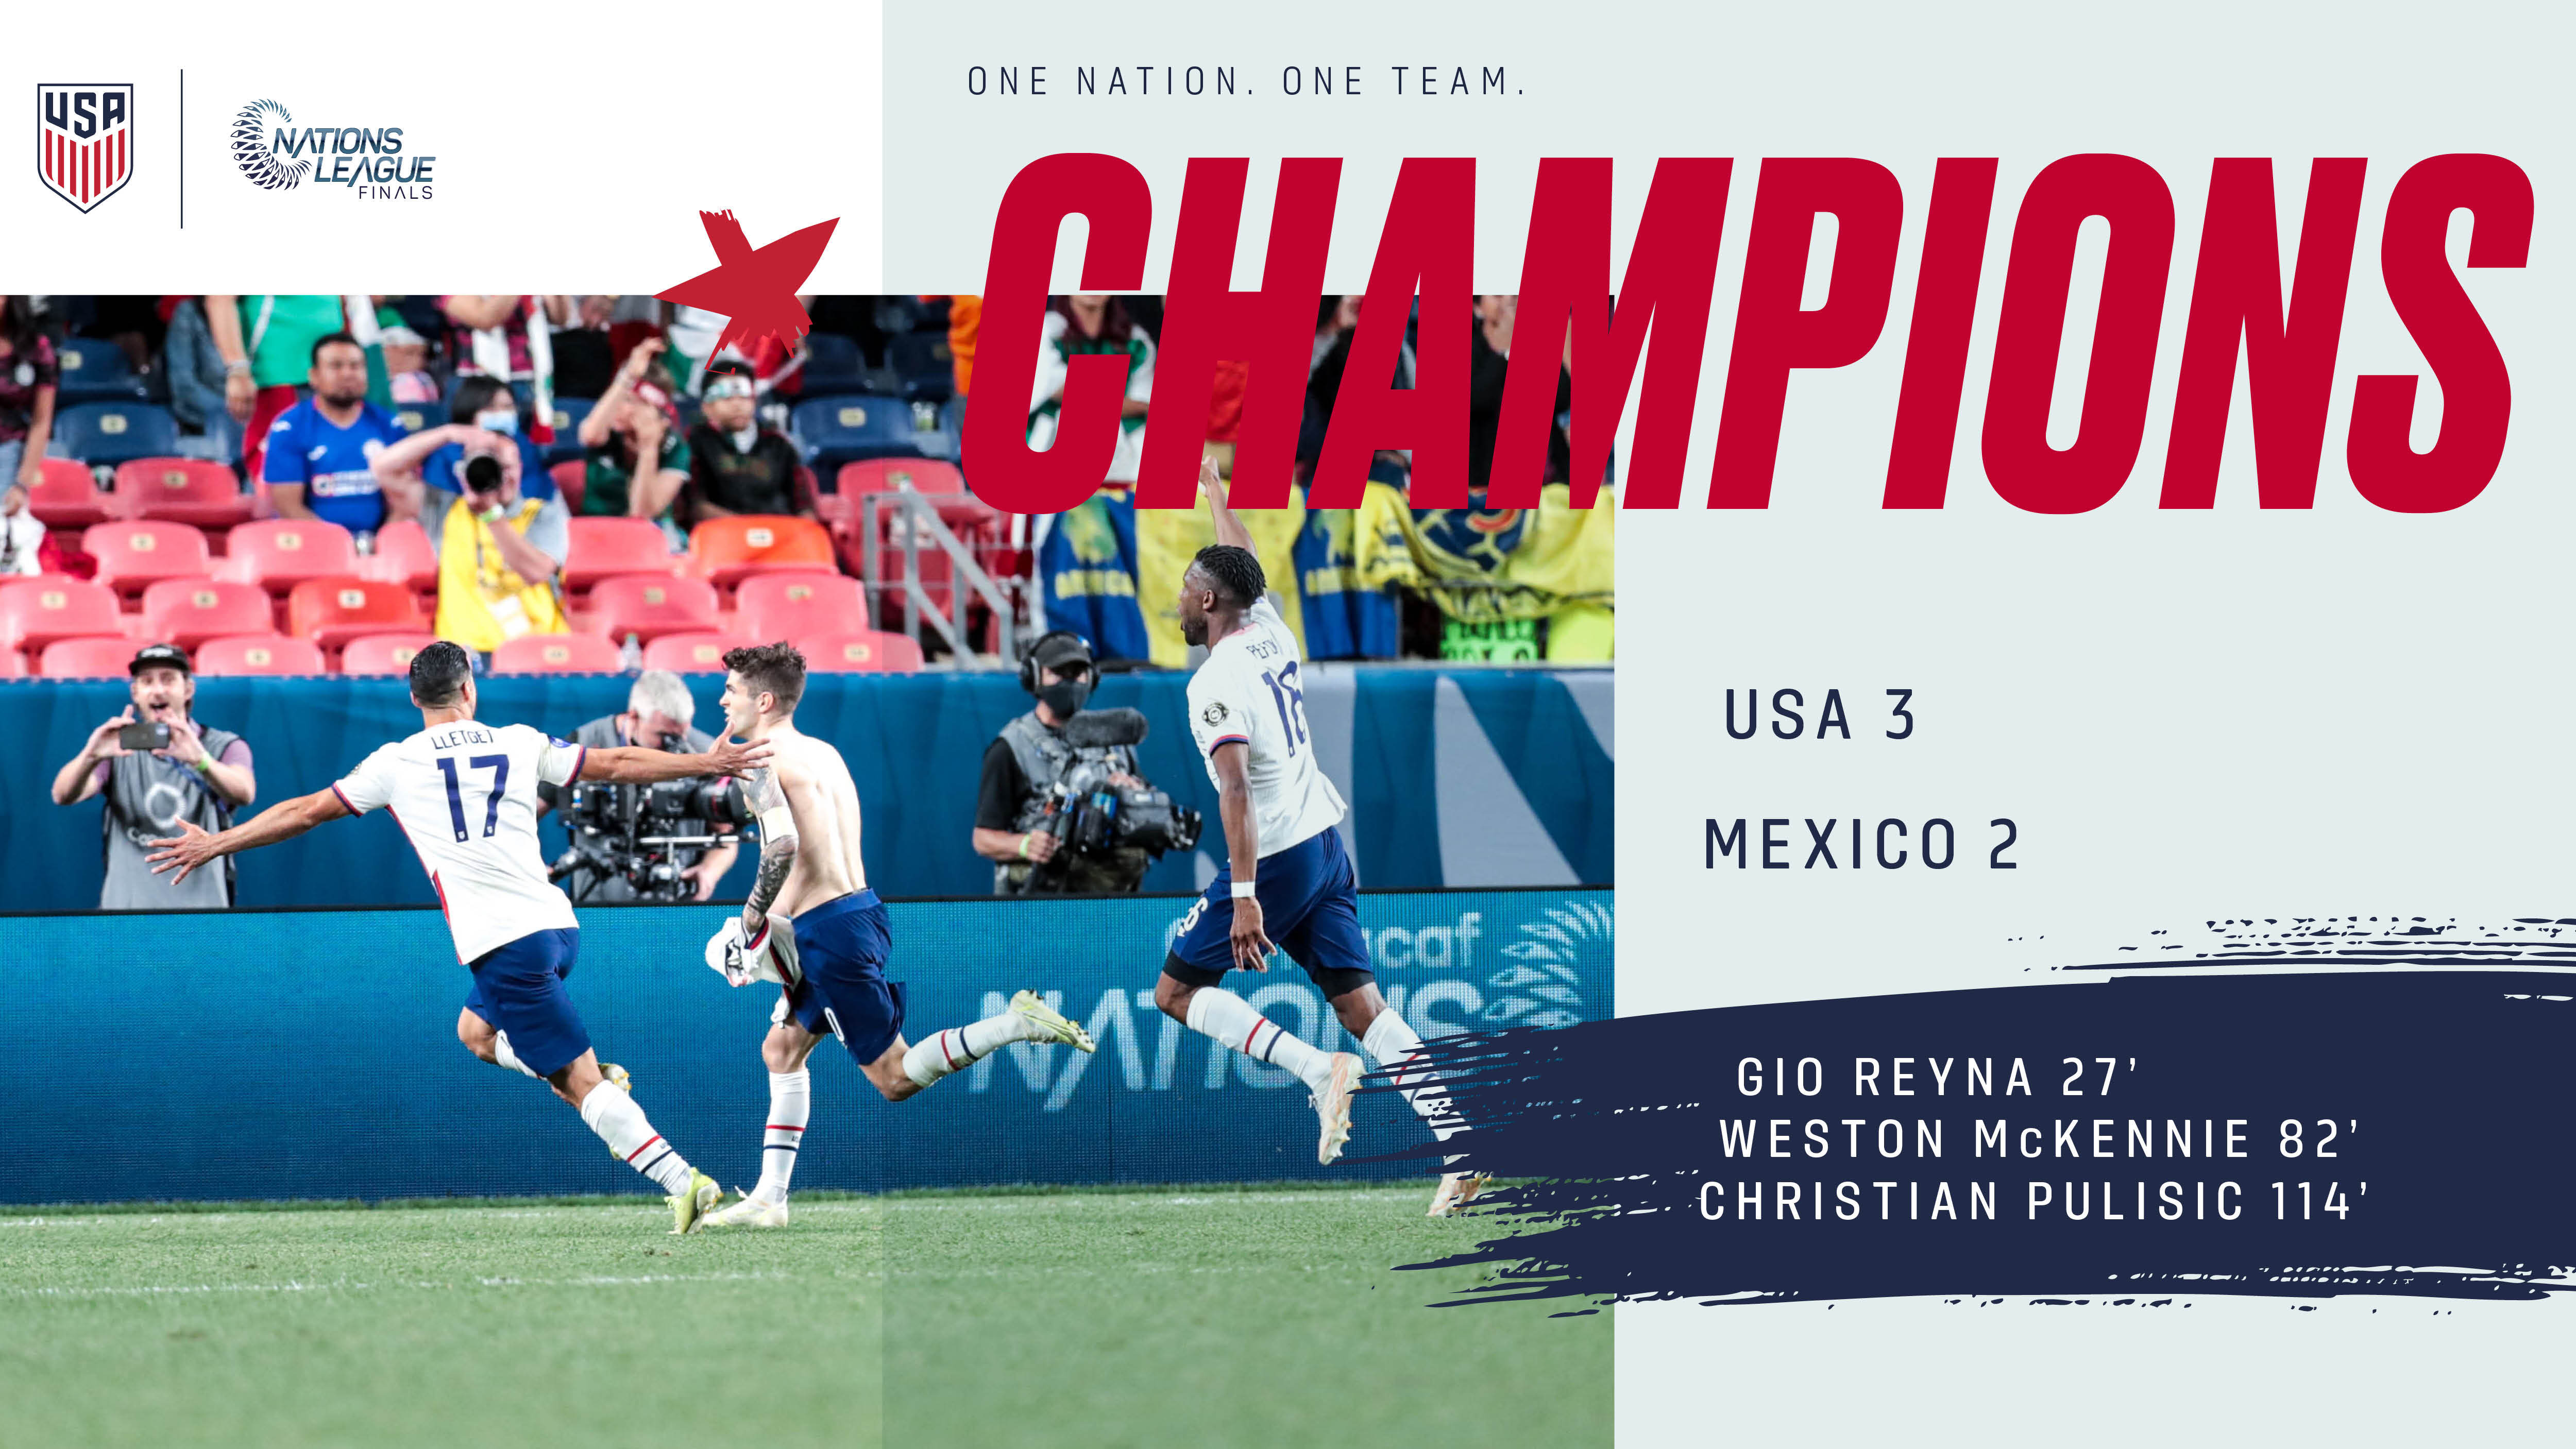 Concacaf Nations League Final: USA 3 - Mexico 2   Match Report, Stats & Standings